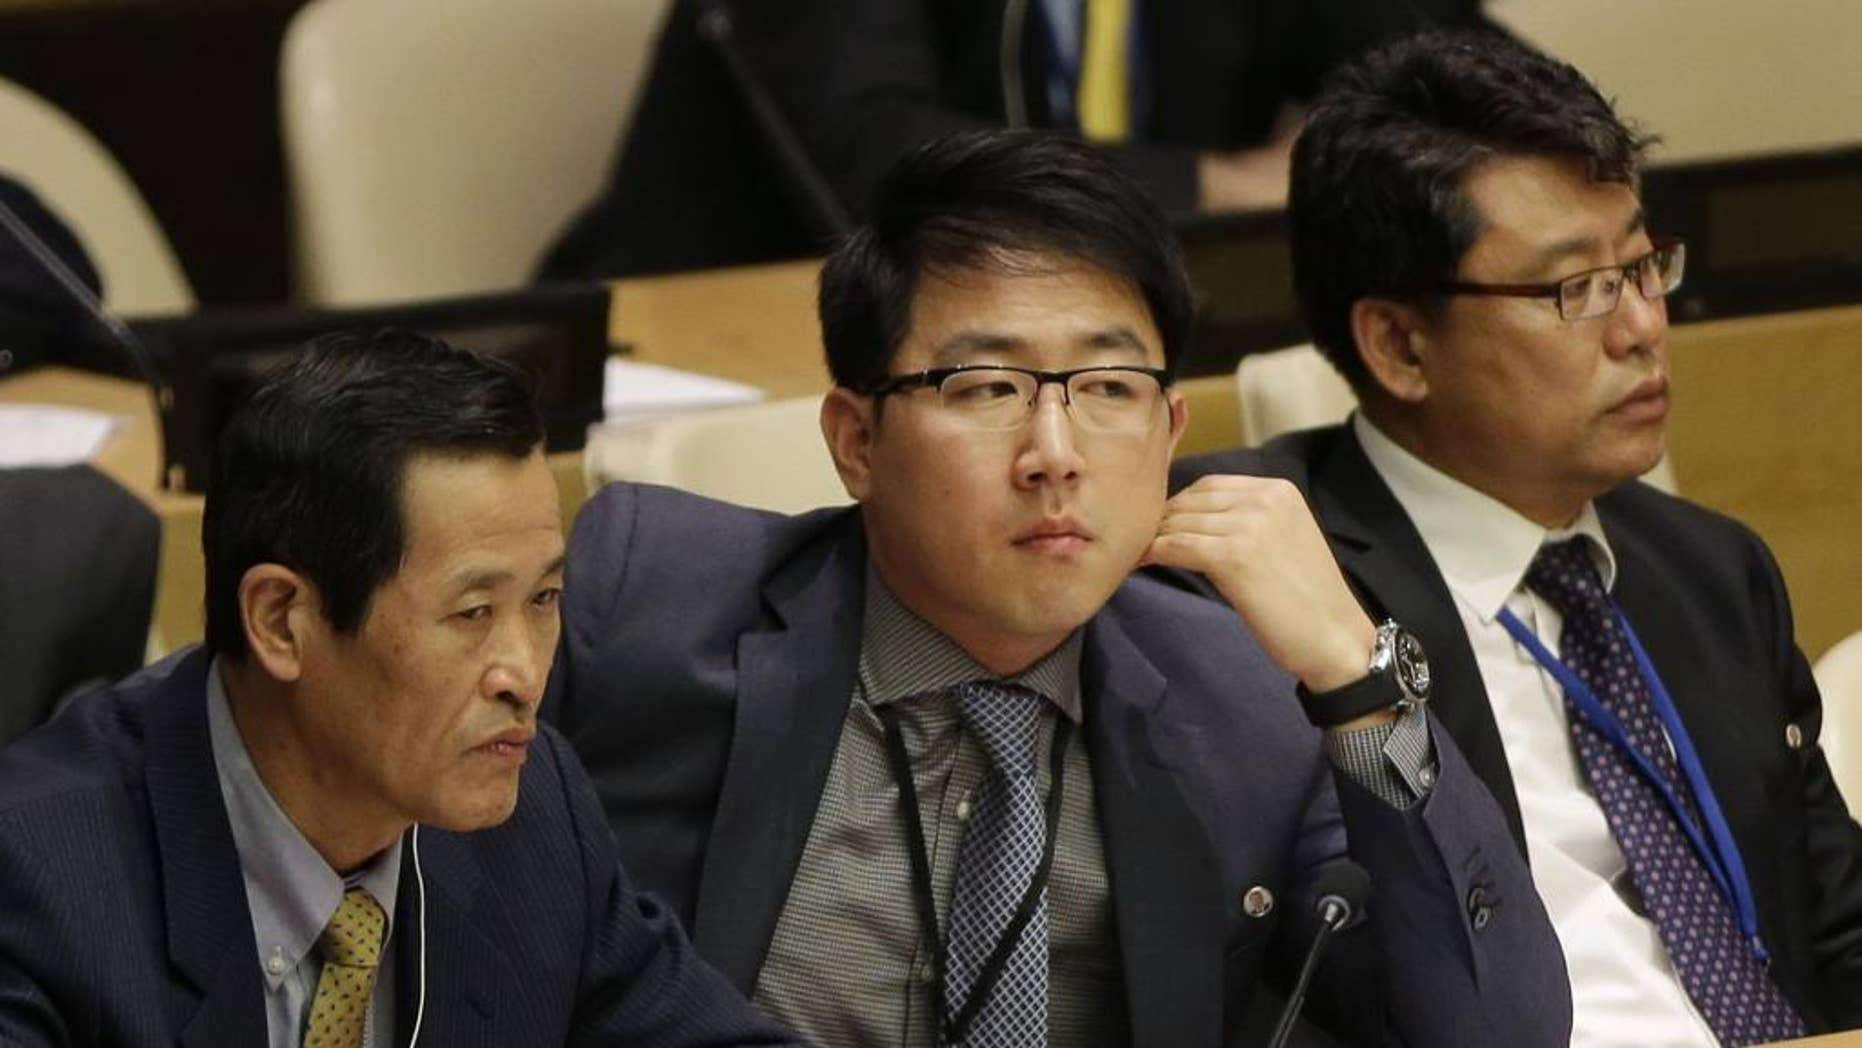 Kim Ju Song, a member of the North Korea delegation, attends a panel discussion on human rights abuses in North Korea at United Nations headquarters, Wednesday, Oct. 22, 2014. (AP Photo/Seth Wenig)